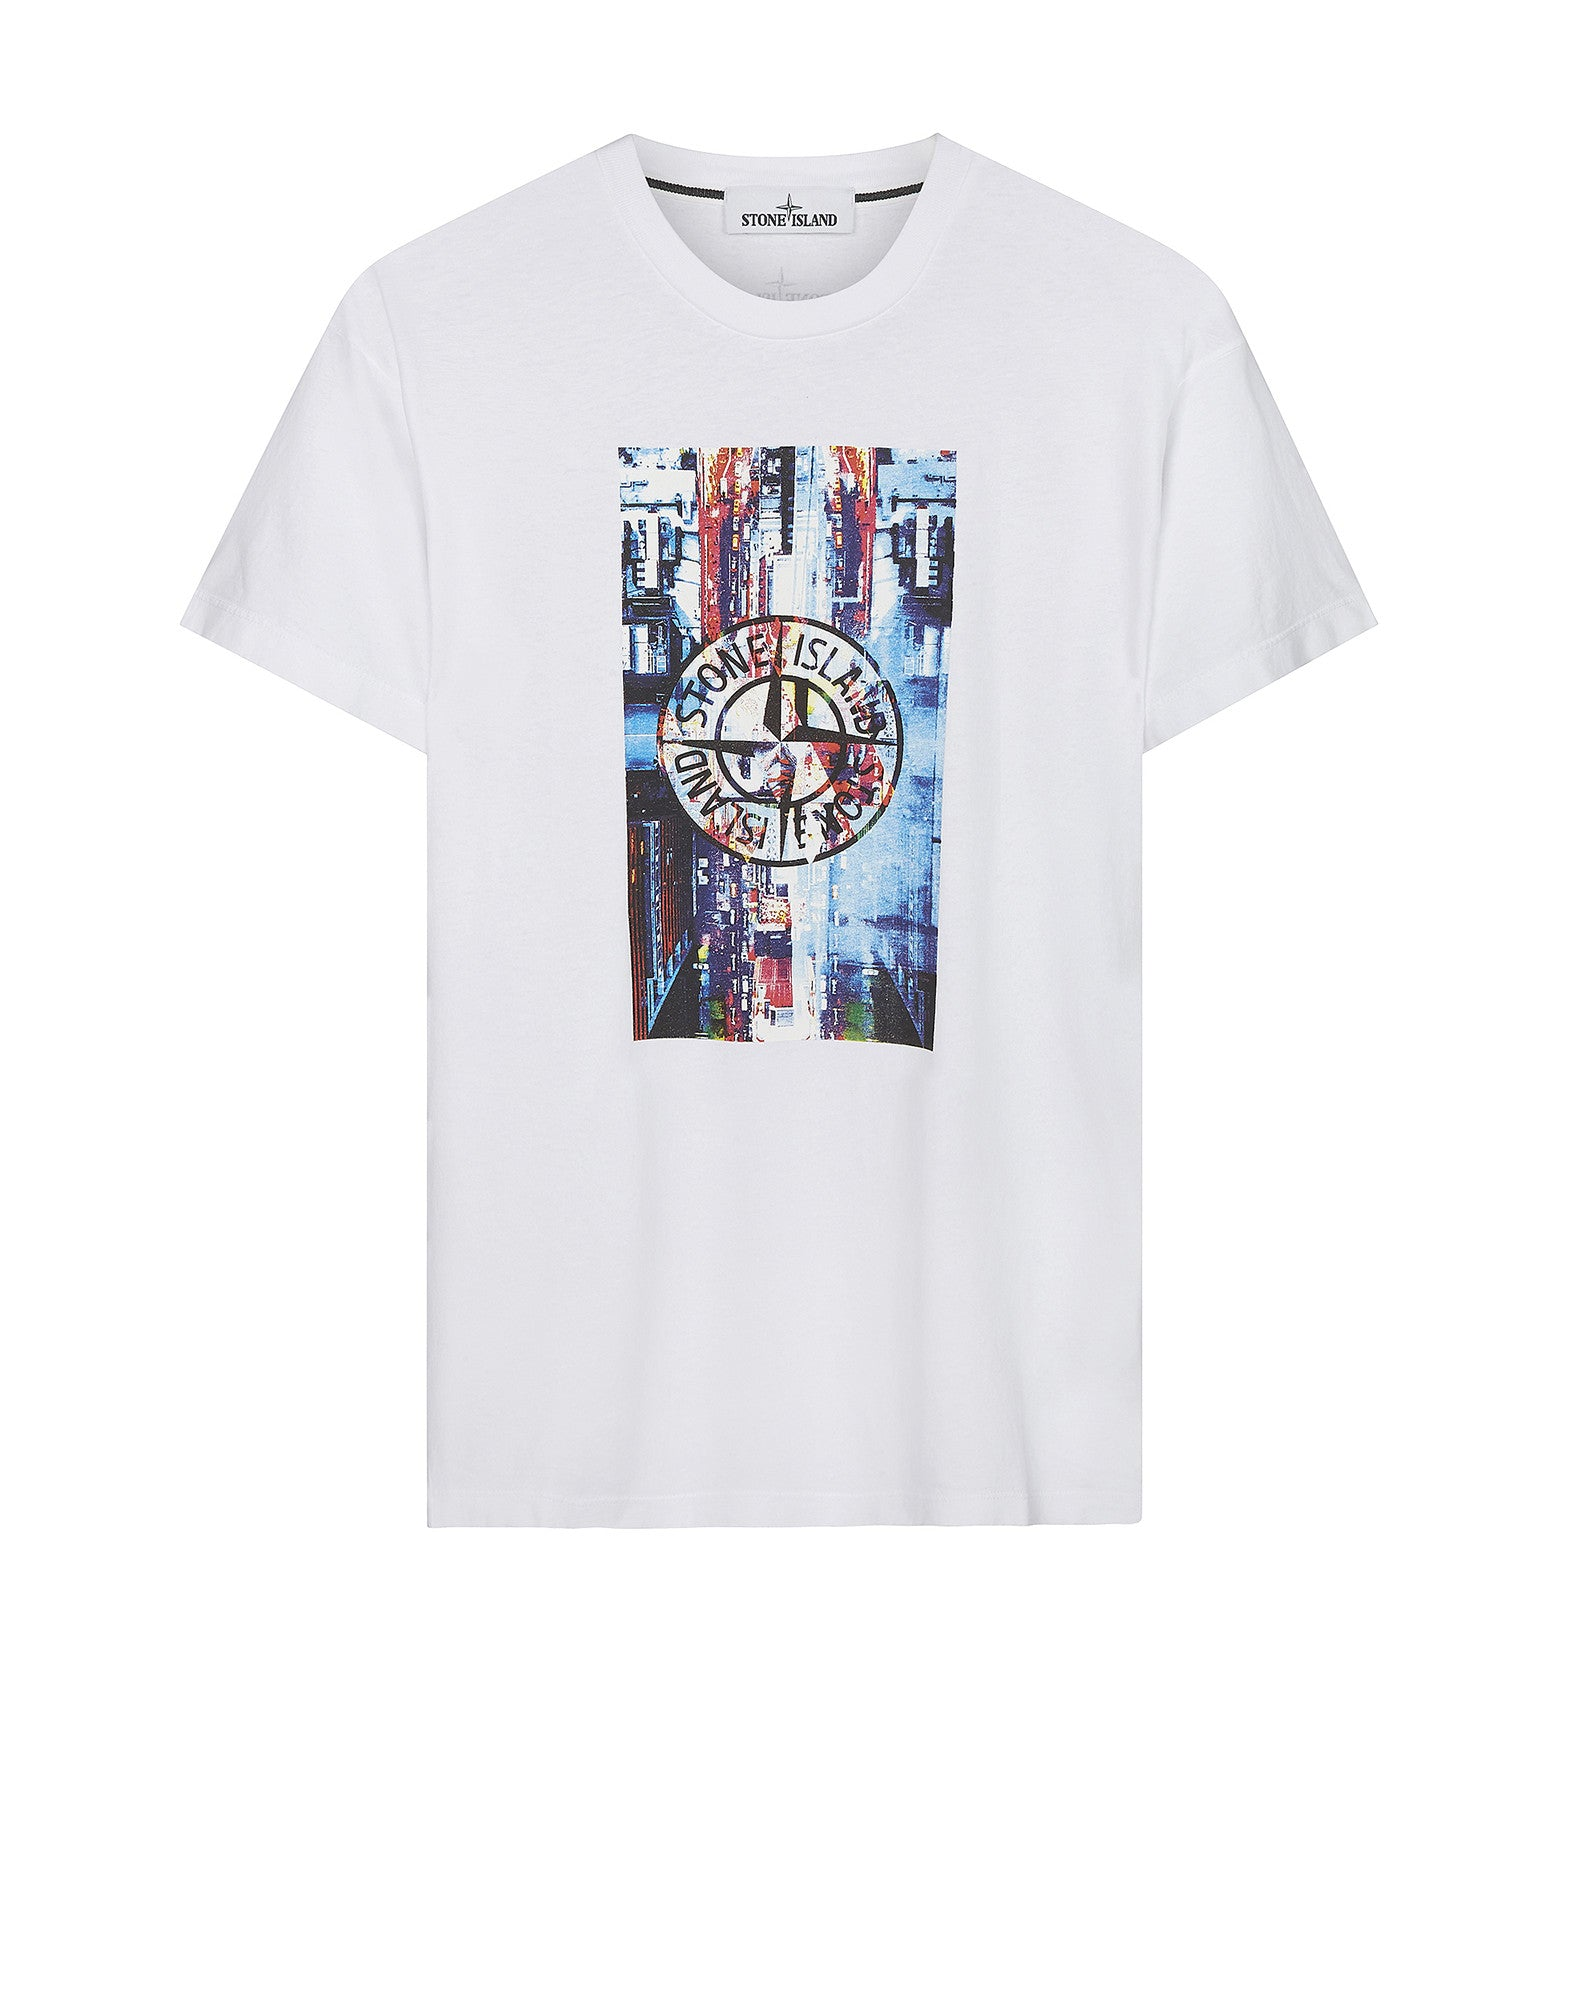 2NS80 'DIGITAL PIN' T-Shirt in White